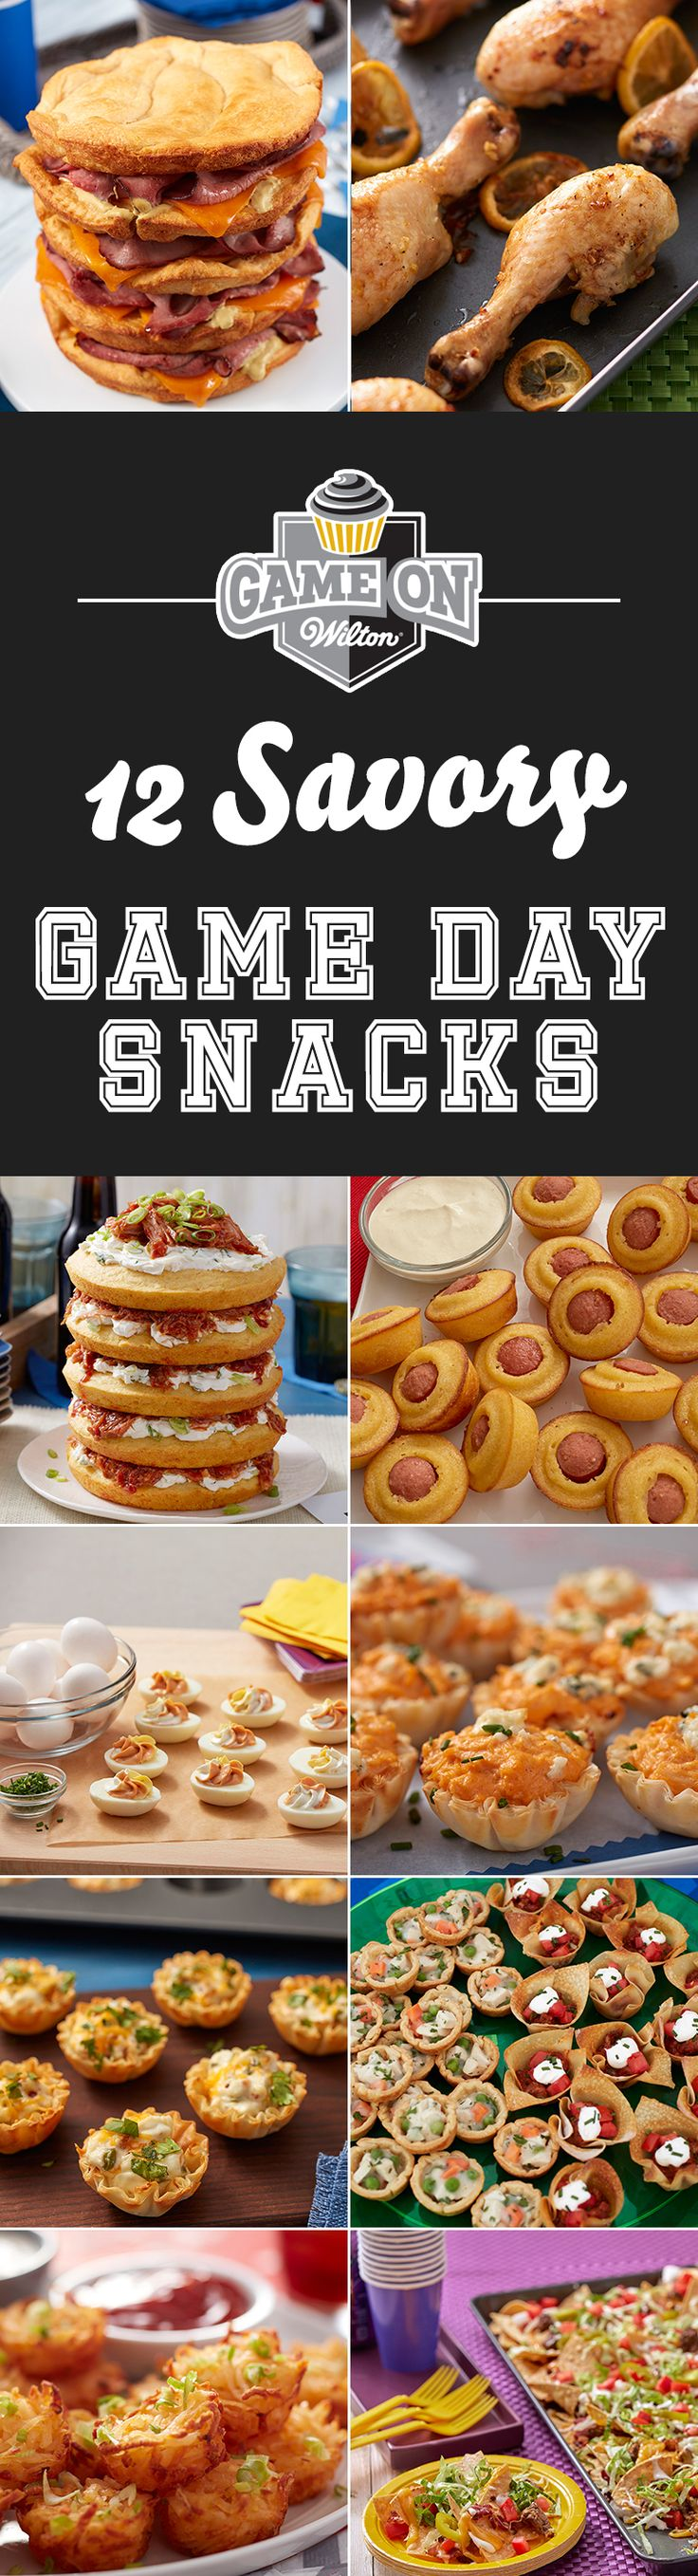 12 Savory Game Day Snacks - Football games and indulgent, comforting, savory food just seem to go hand in hand. Whether you're watching the game at home, at a friend's house or tailgating at the stadium, these 12 savory game day snacks are sure to get your snack game on!